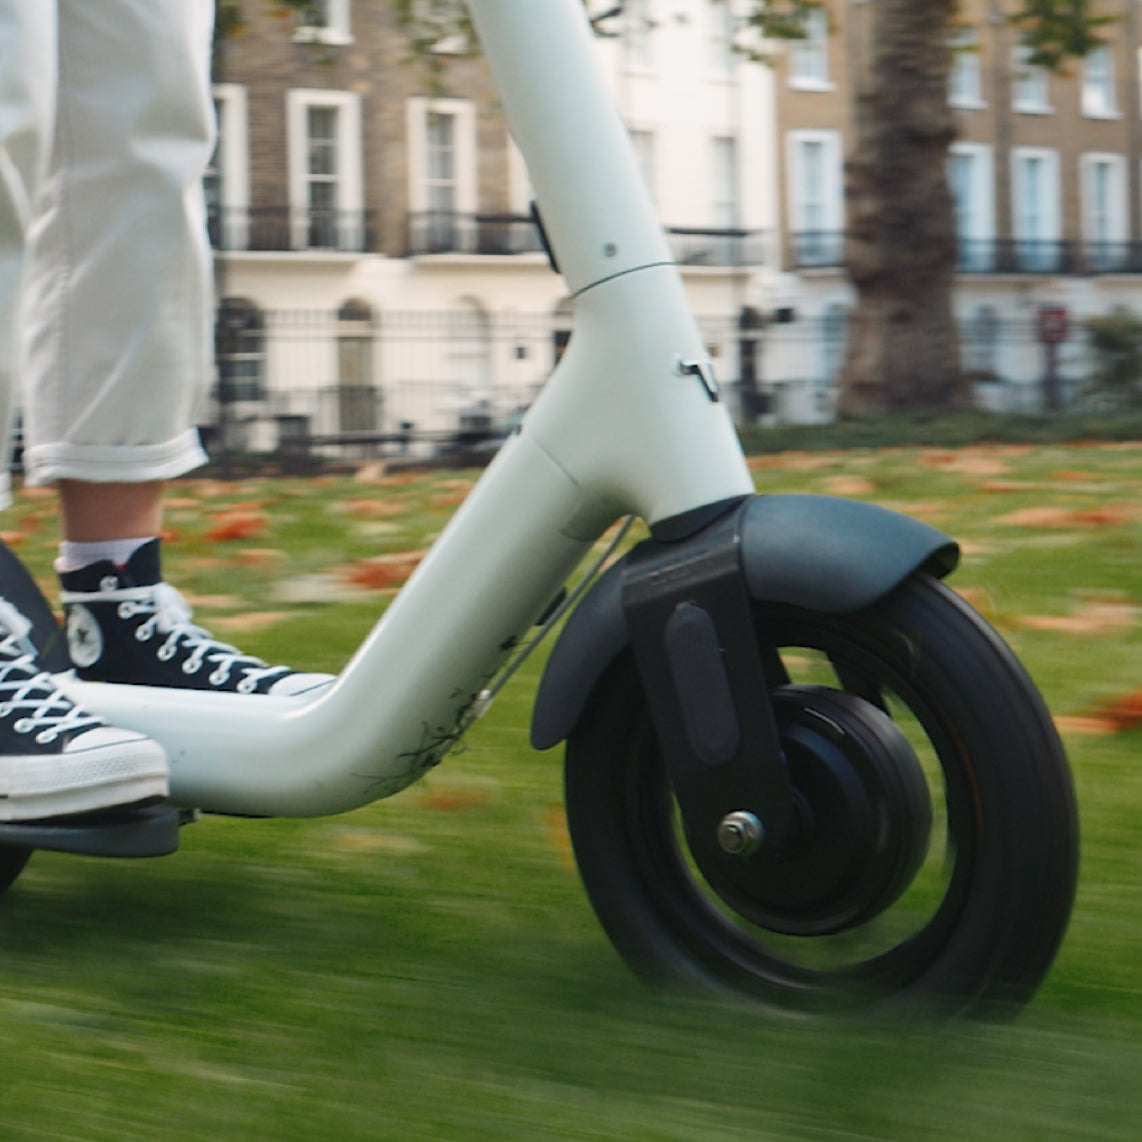 With an IP55 rating and spectacular grip, you can ride TAUR in the rain – Mary Poppins your way through town.